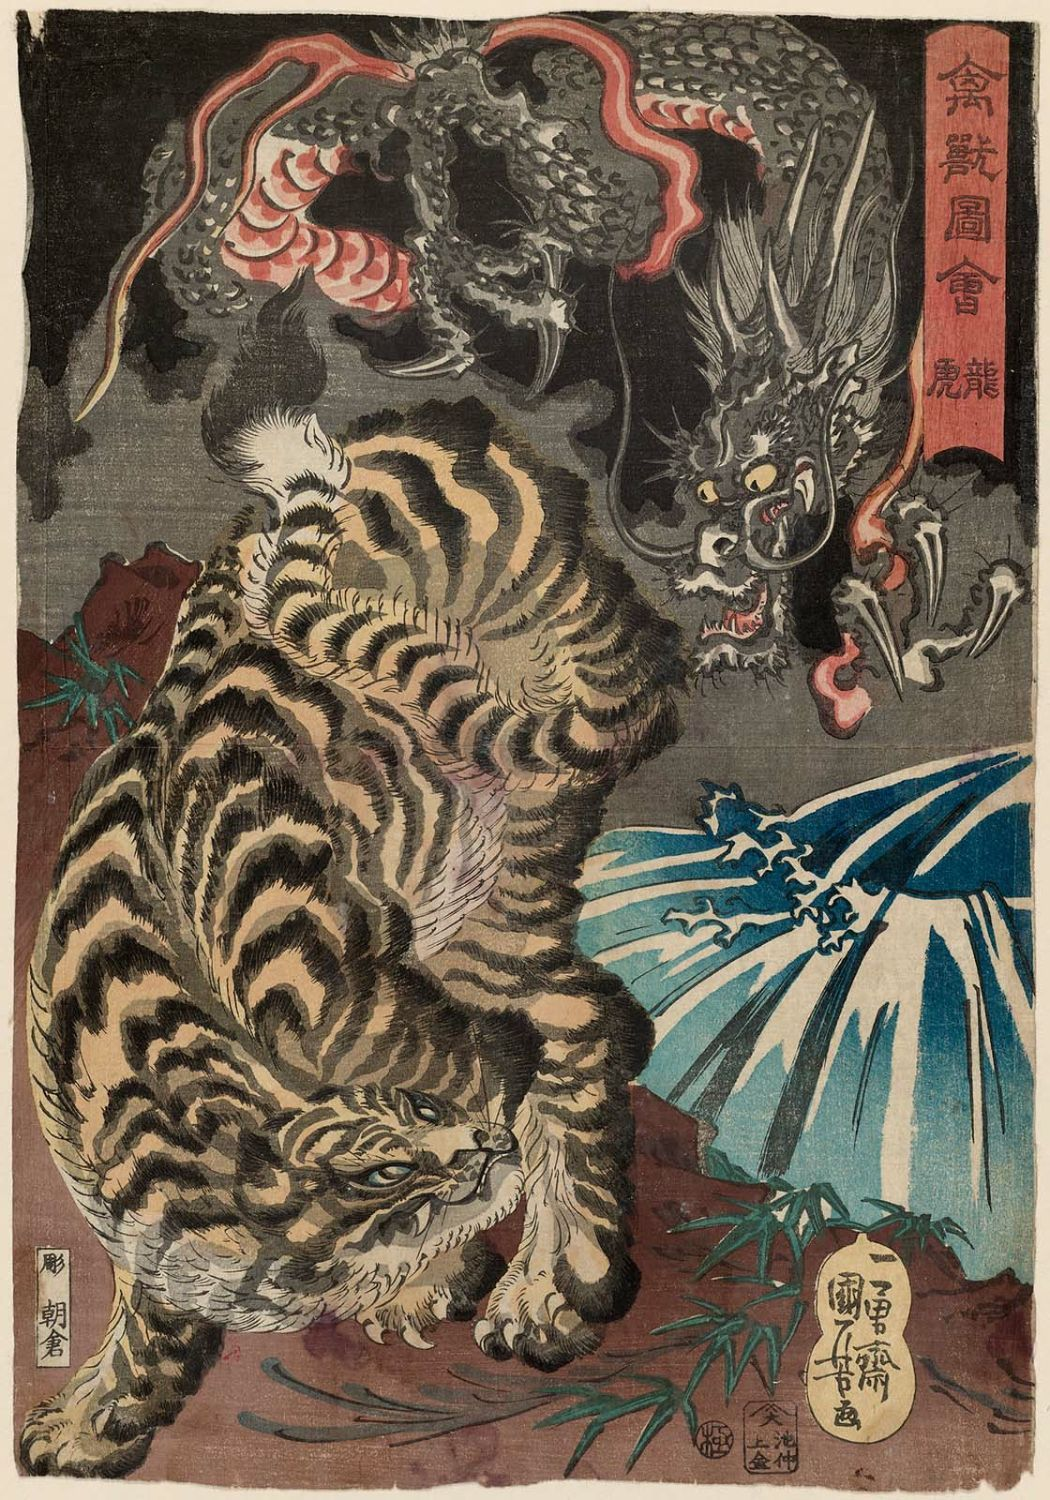 Artist: Utagawa Kuniyoshi      Title: Dragon and Tiger (Ryûko), from the series Pictures of Birds and Beasts (Kinjû zue)      Date: 1837